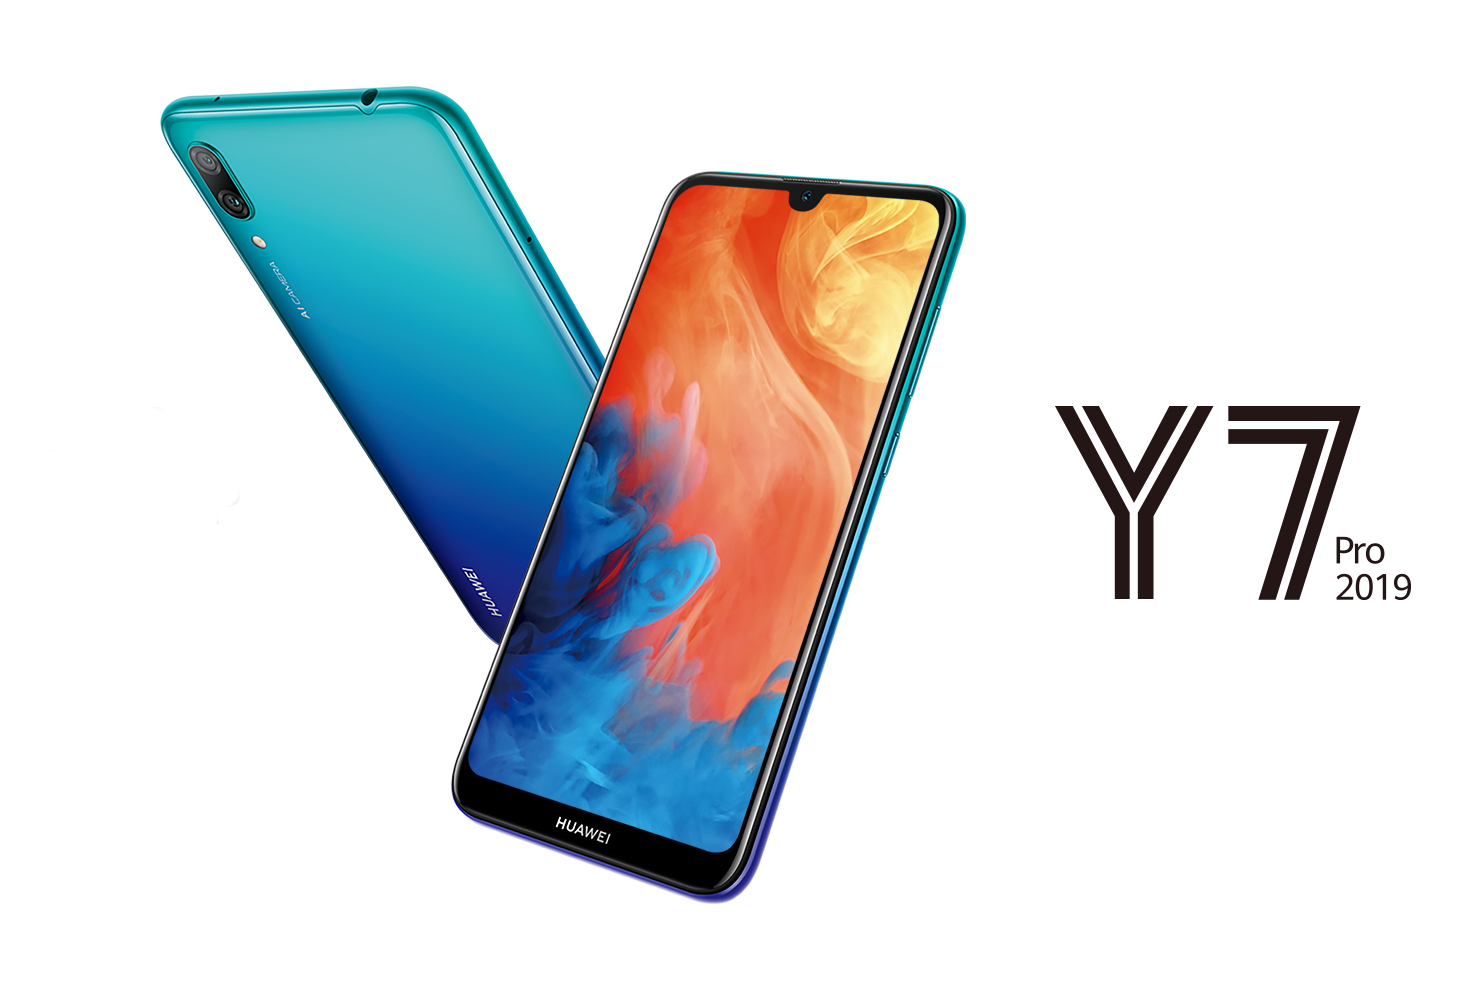 Huawei Y7 Pro 2019 Launched with 4000mAh Battery, Waterdrop